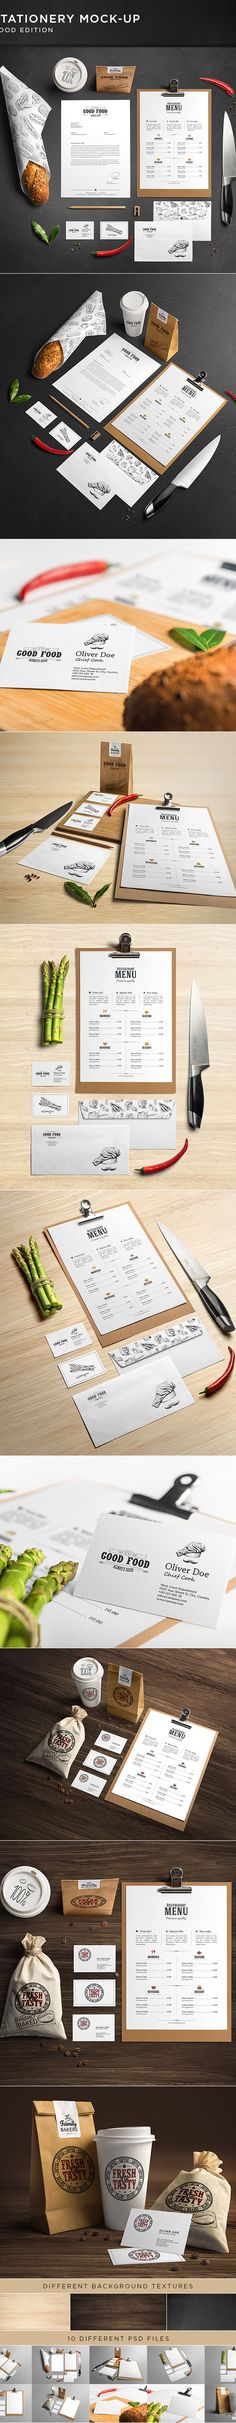 Stationery / Branding Mock-Up Mock-Up by Andrej Sevkovskij, via Behance